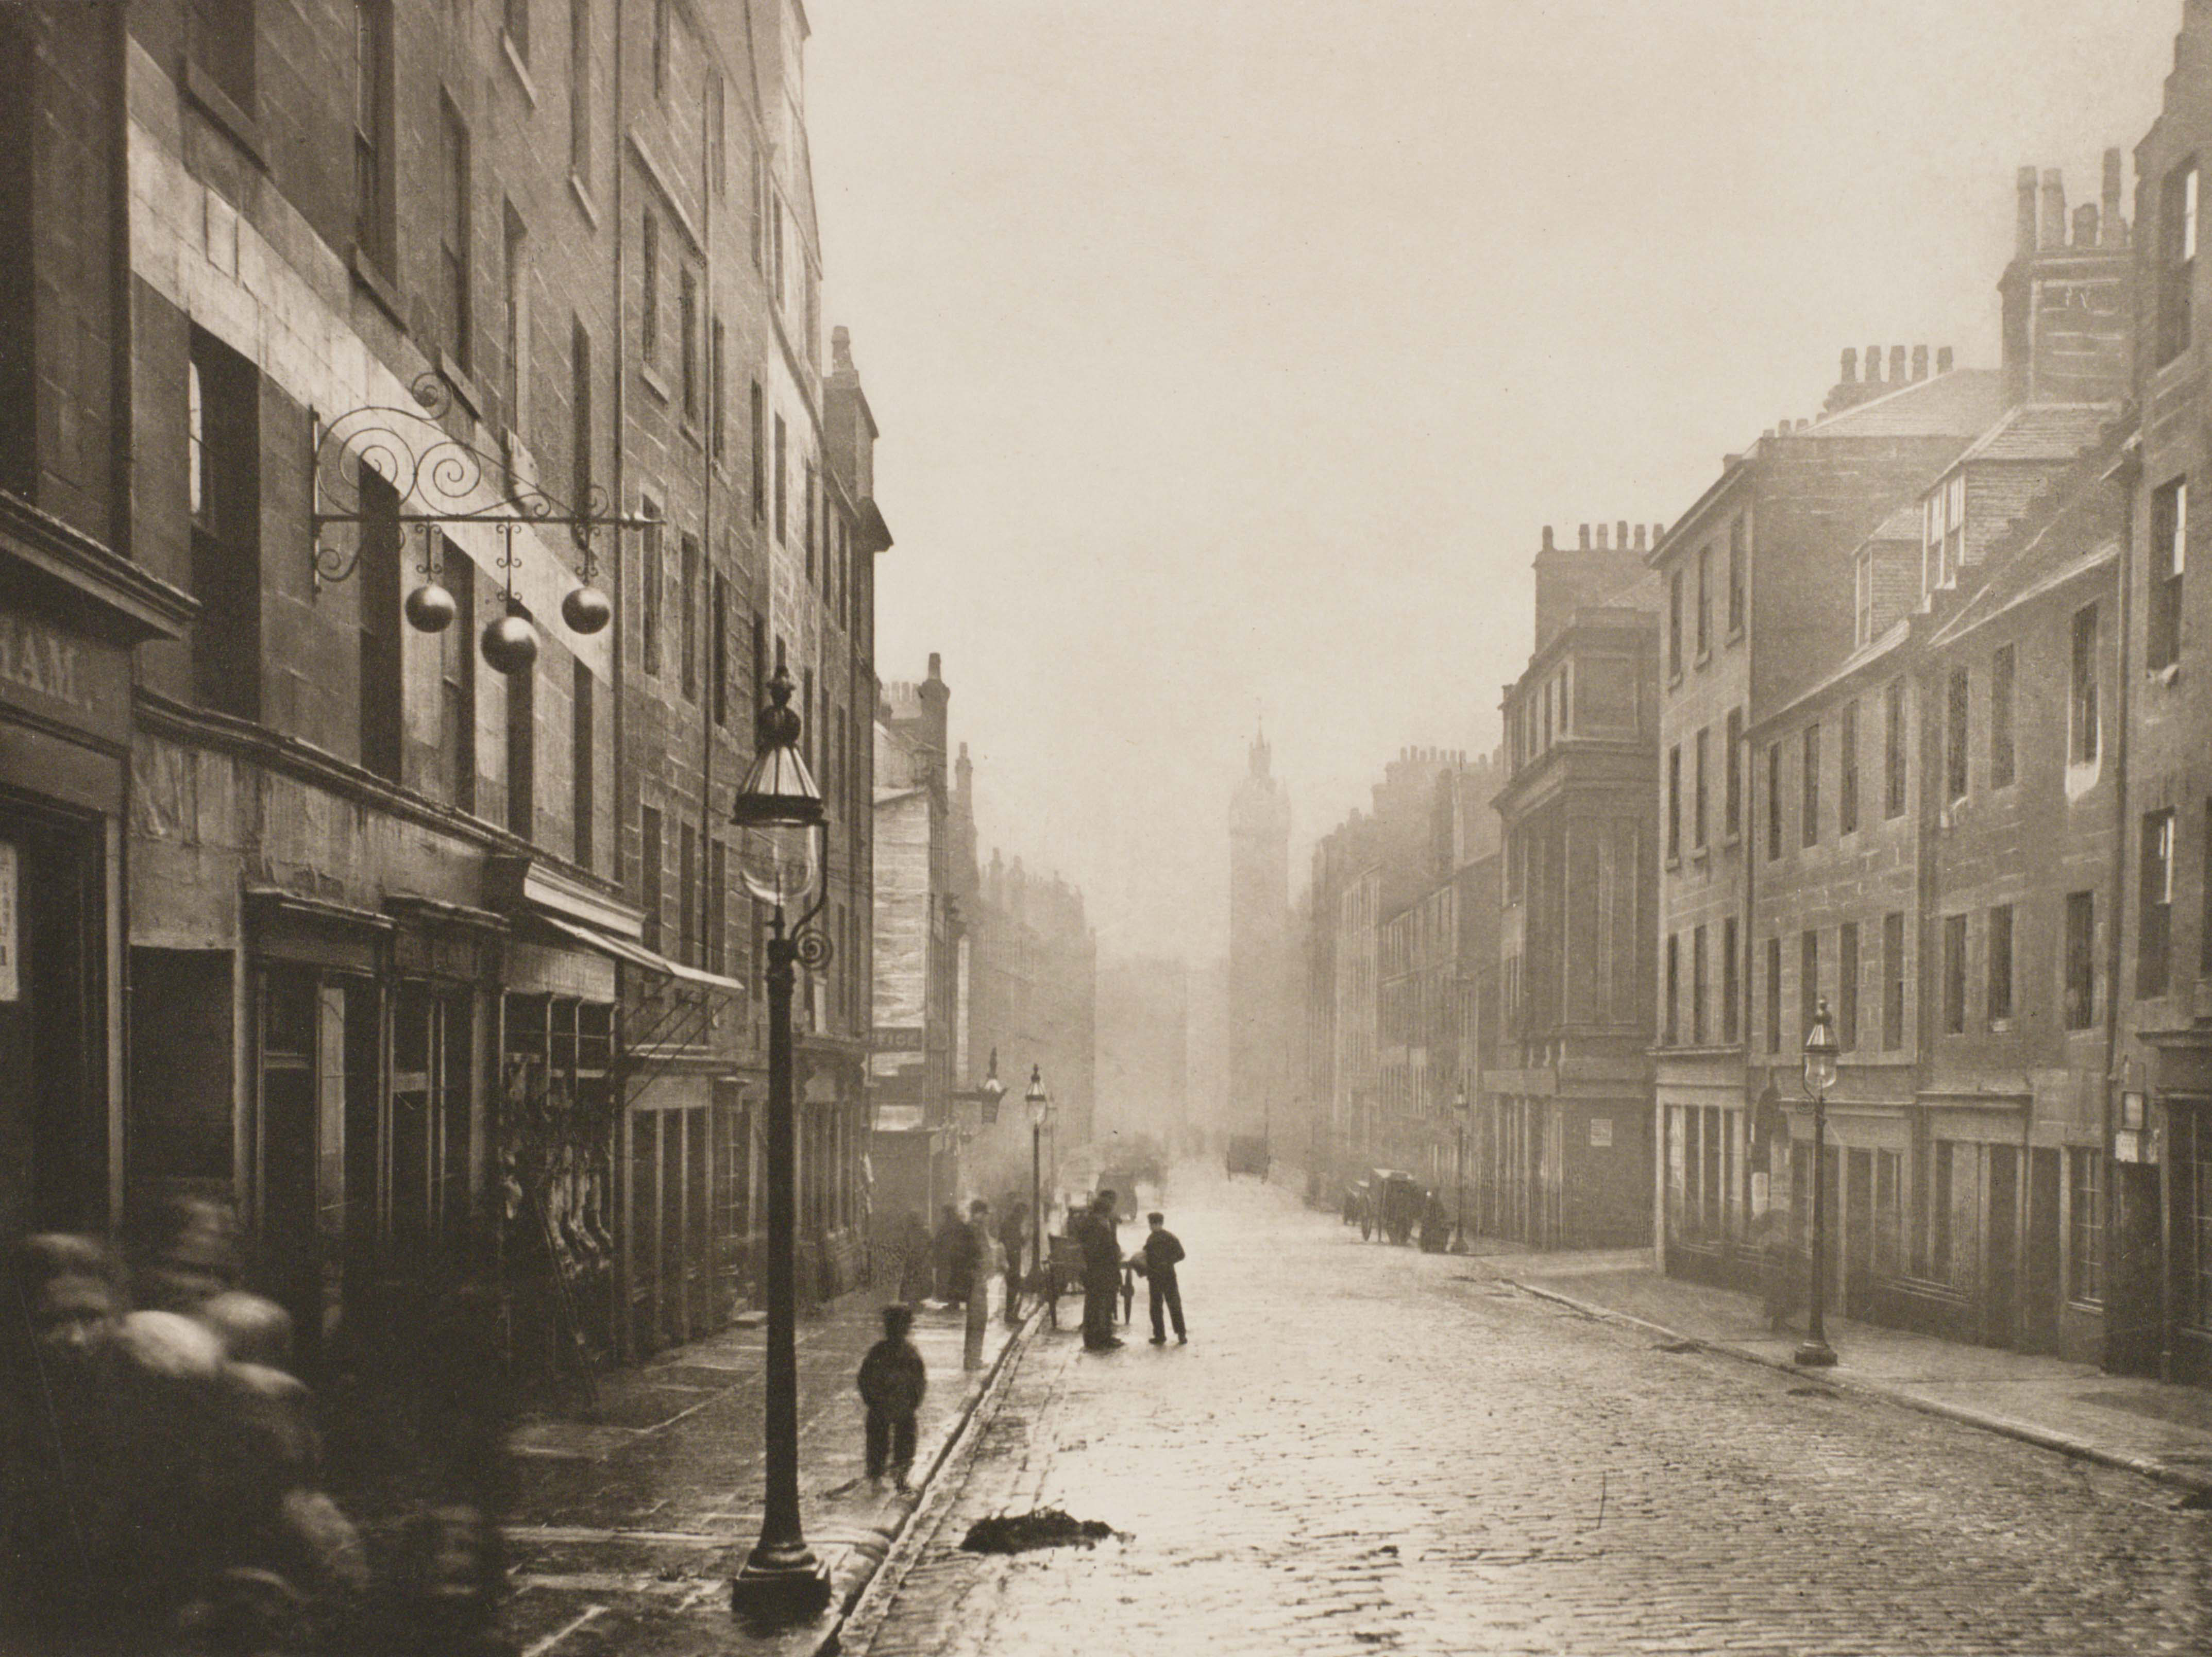 'The Old Closes and Streets of Glasgow' (1868) by Thomas Annan